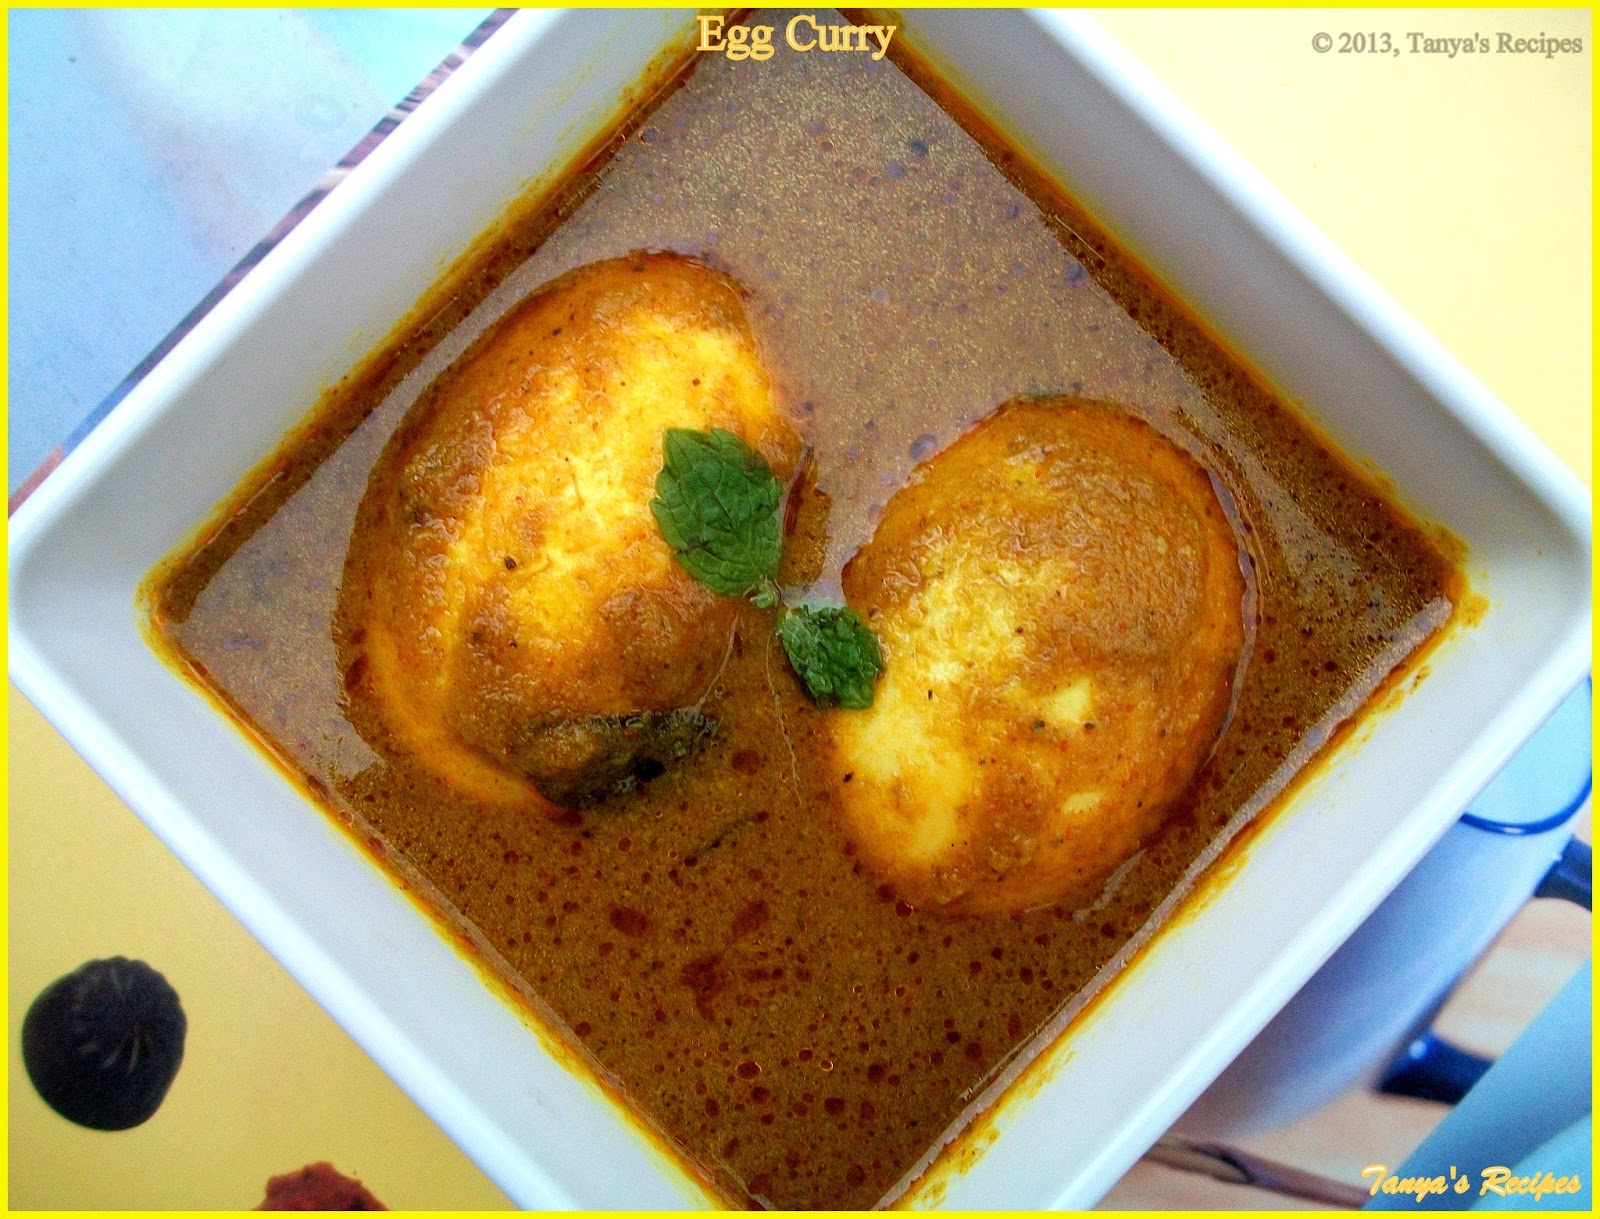 Egg Curry | Tanya's Recipes